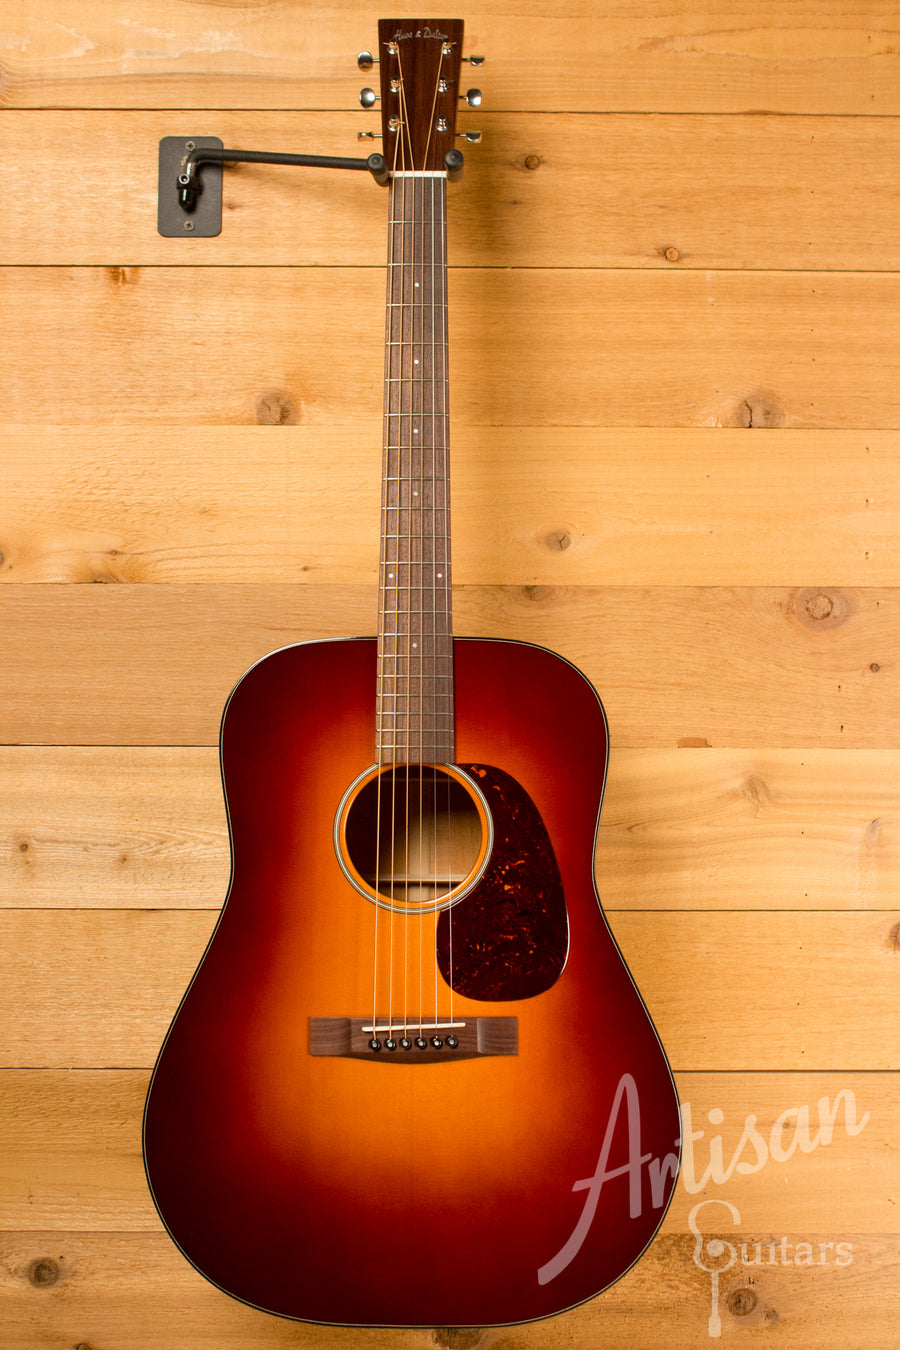 Huss and Dalton Road Edition Dreadnought - Sitka Spruce and Mahogany with Sunburst ID-10650 - Artisan Guitars